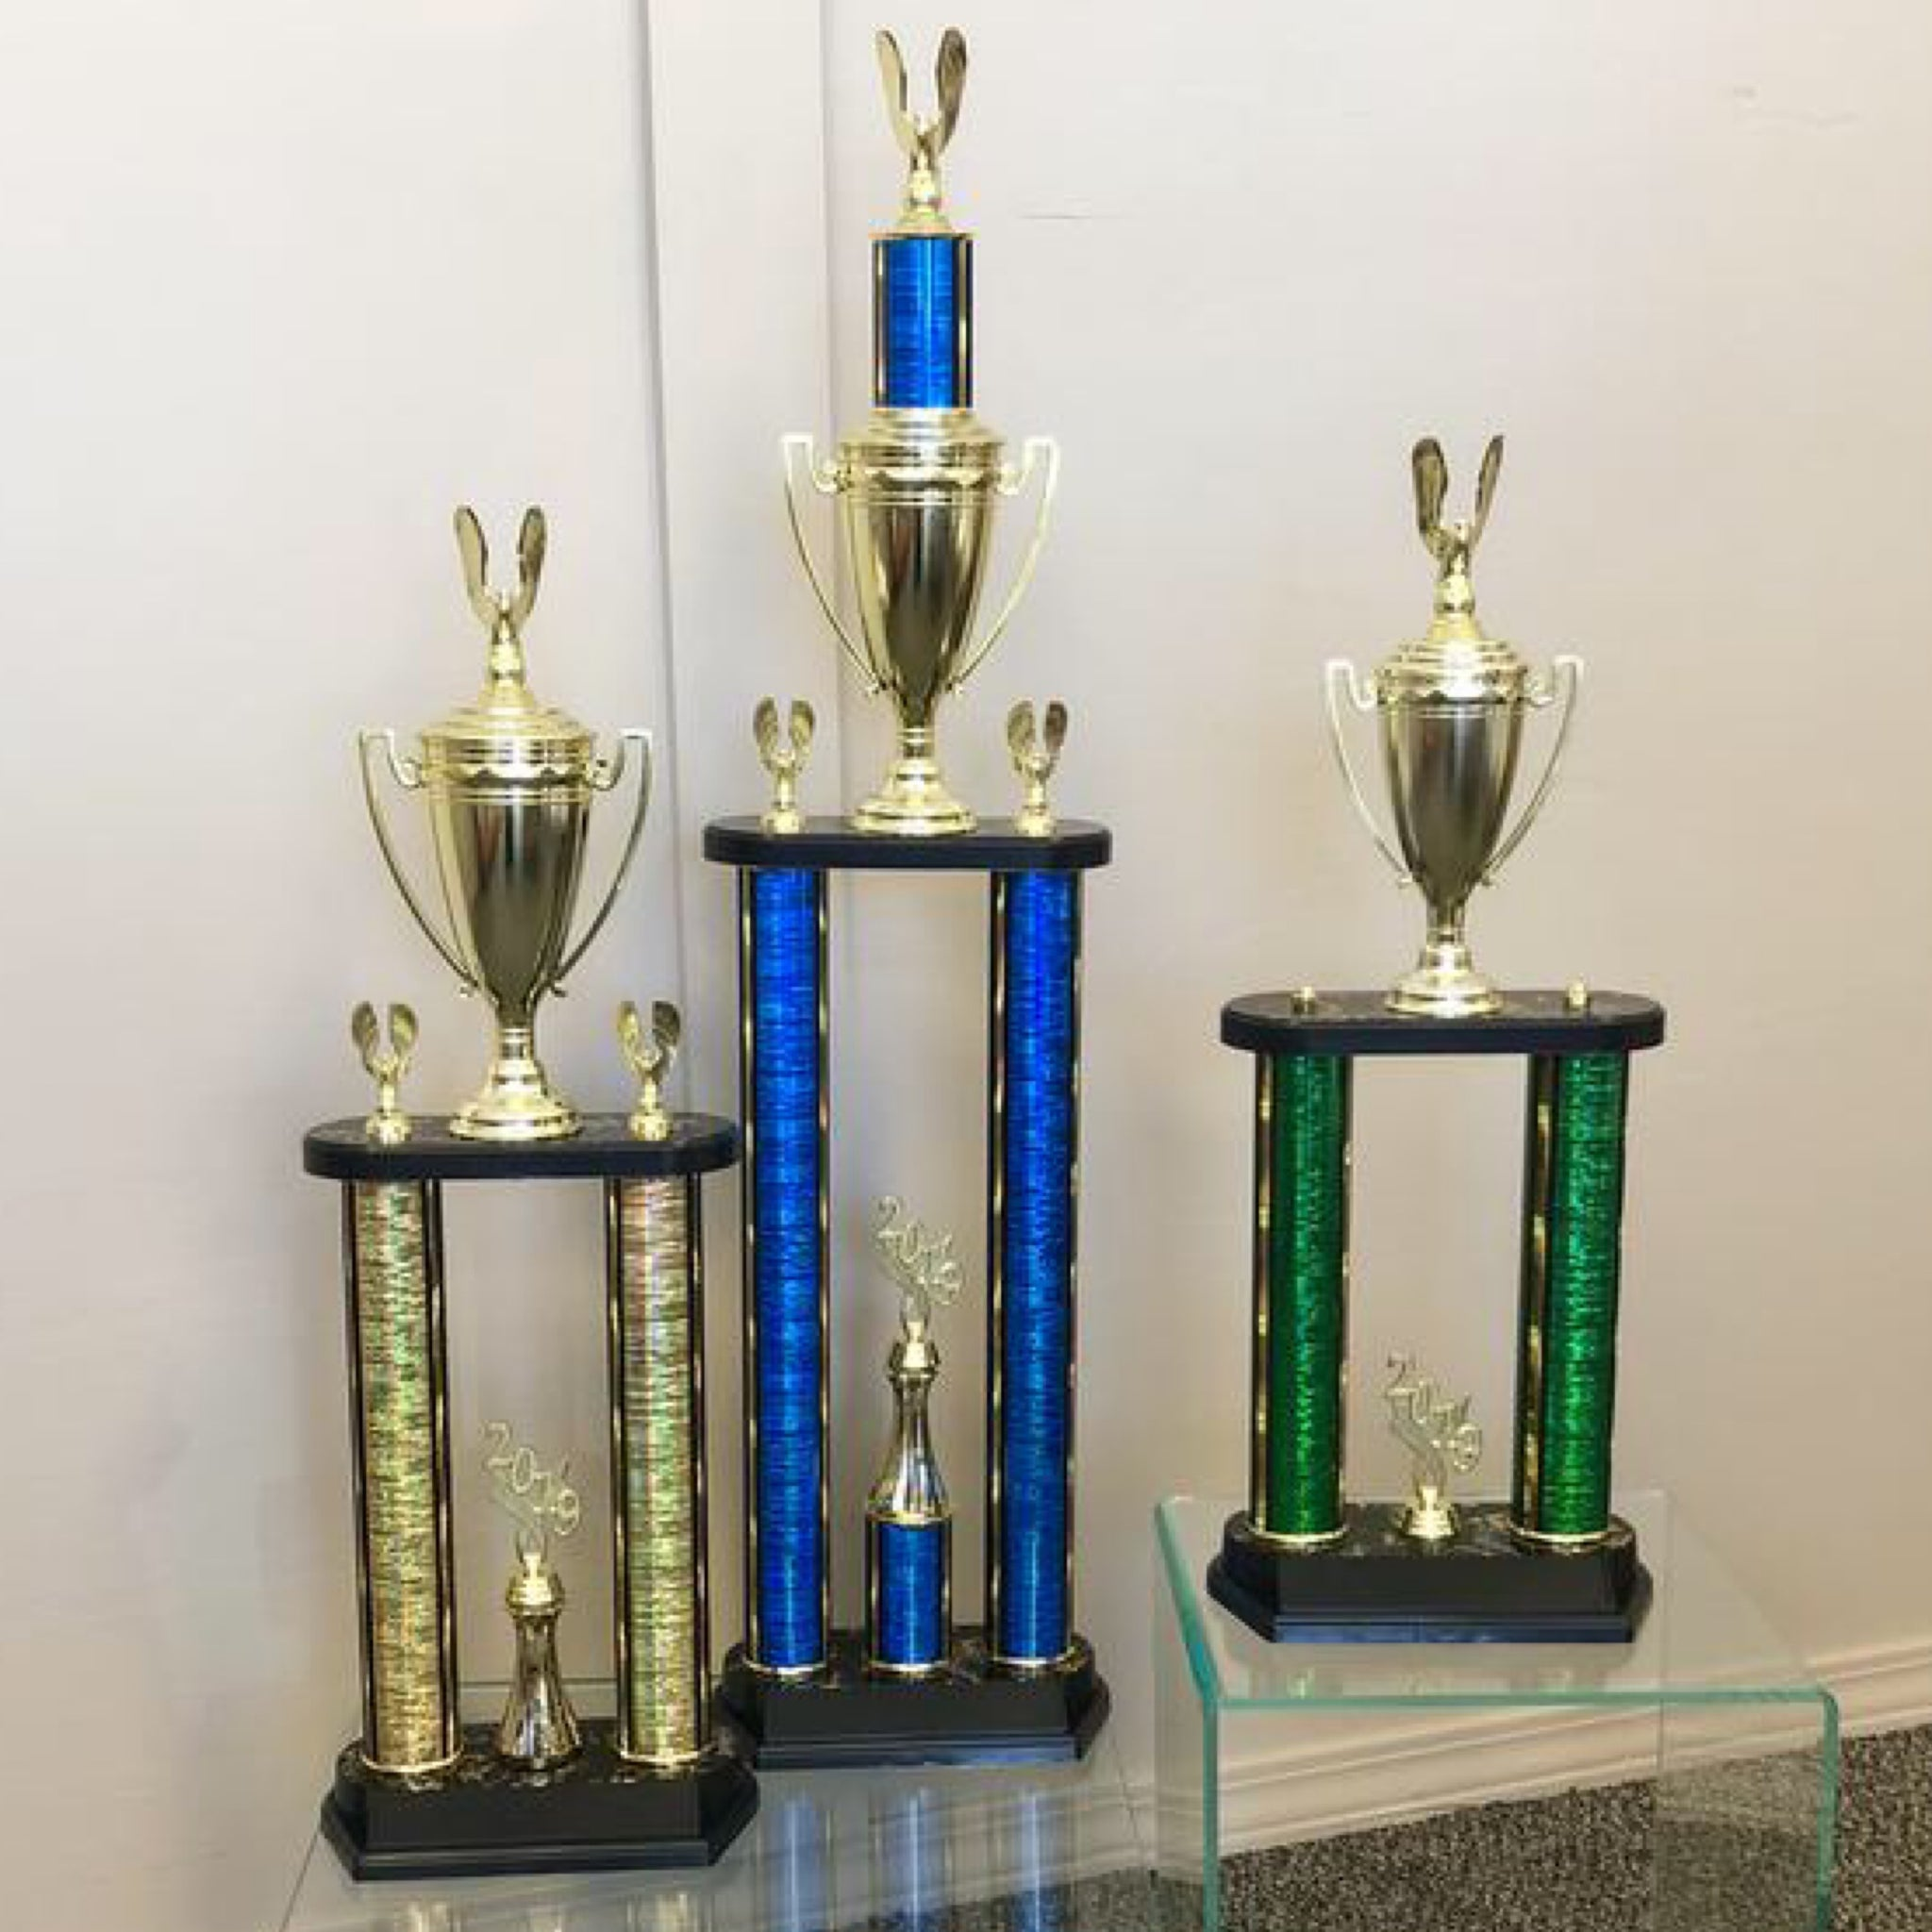 Medium size two post column trophies. Gold two post trophy with cup. Blue two post column trophy with cup. Green two post column trophy with cup.